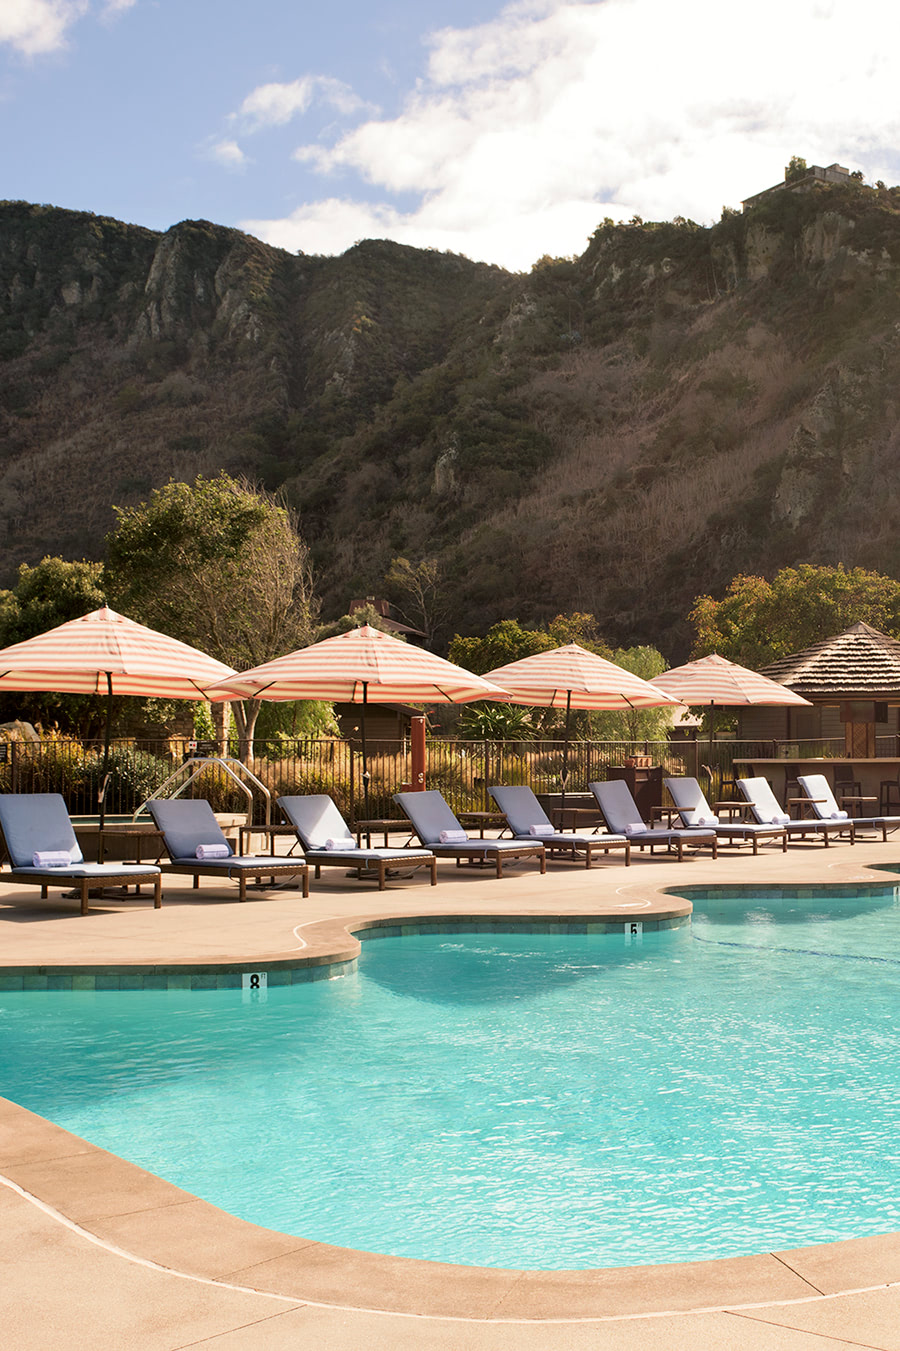 Orange County Travel Guide Everything You Need to Know- The Ranch Laguna Beach Pool